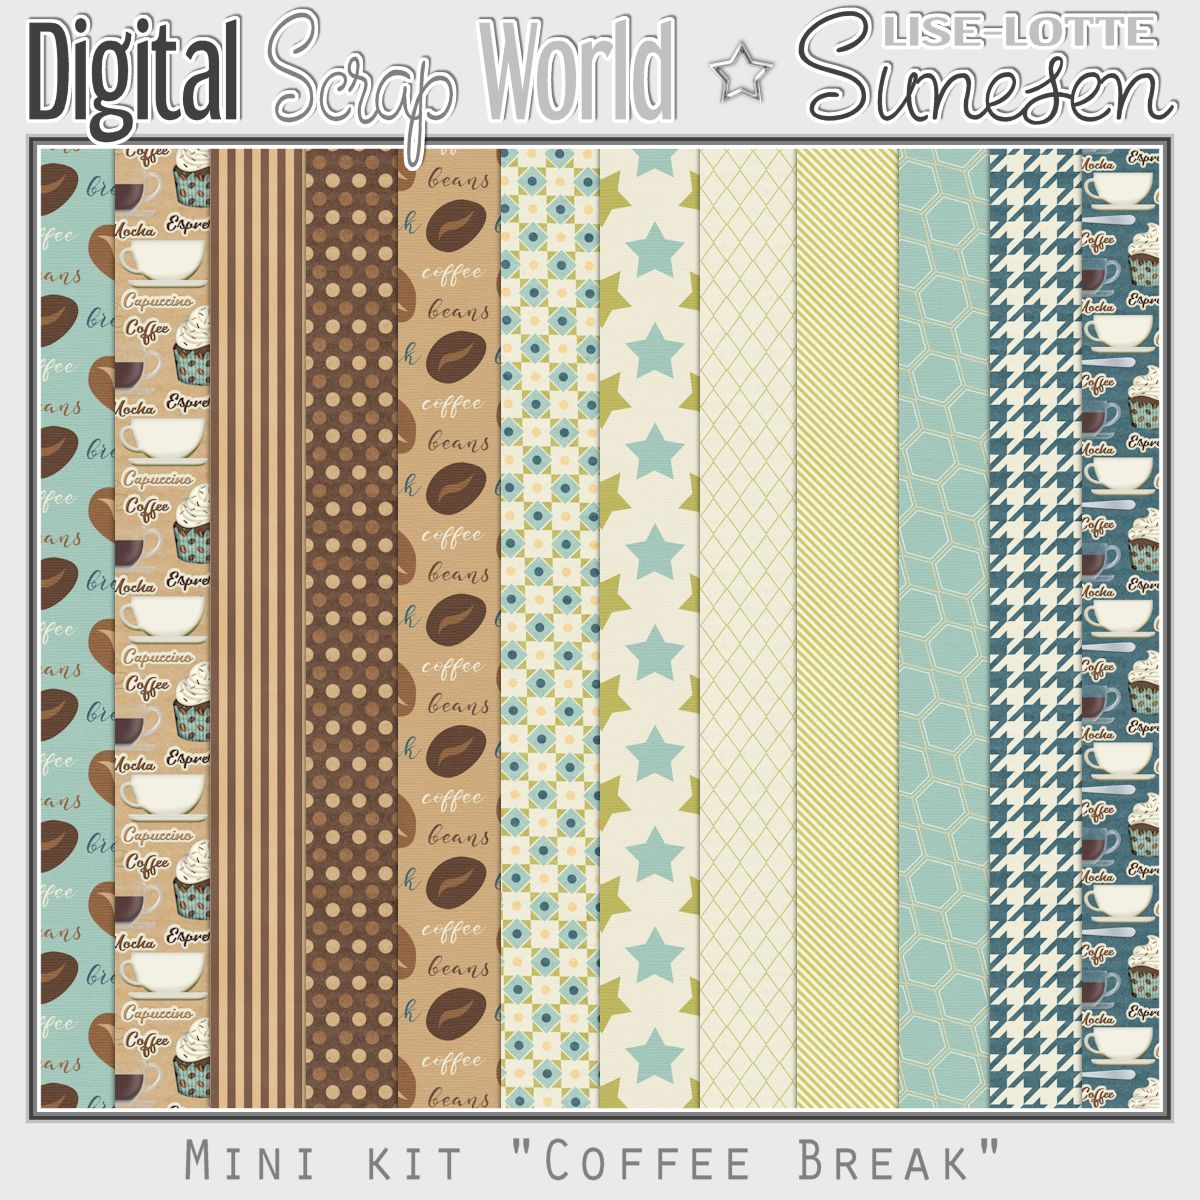 Digital Scrap World On Twitter Digitalscrapbooking Mini Kit